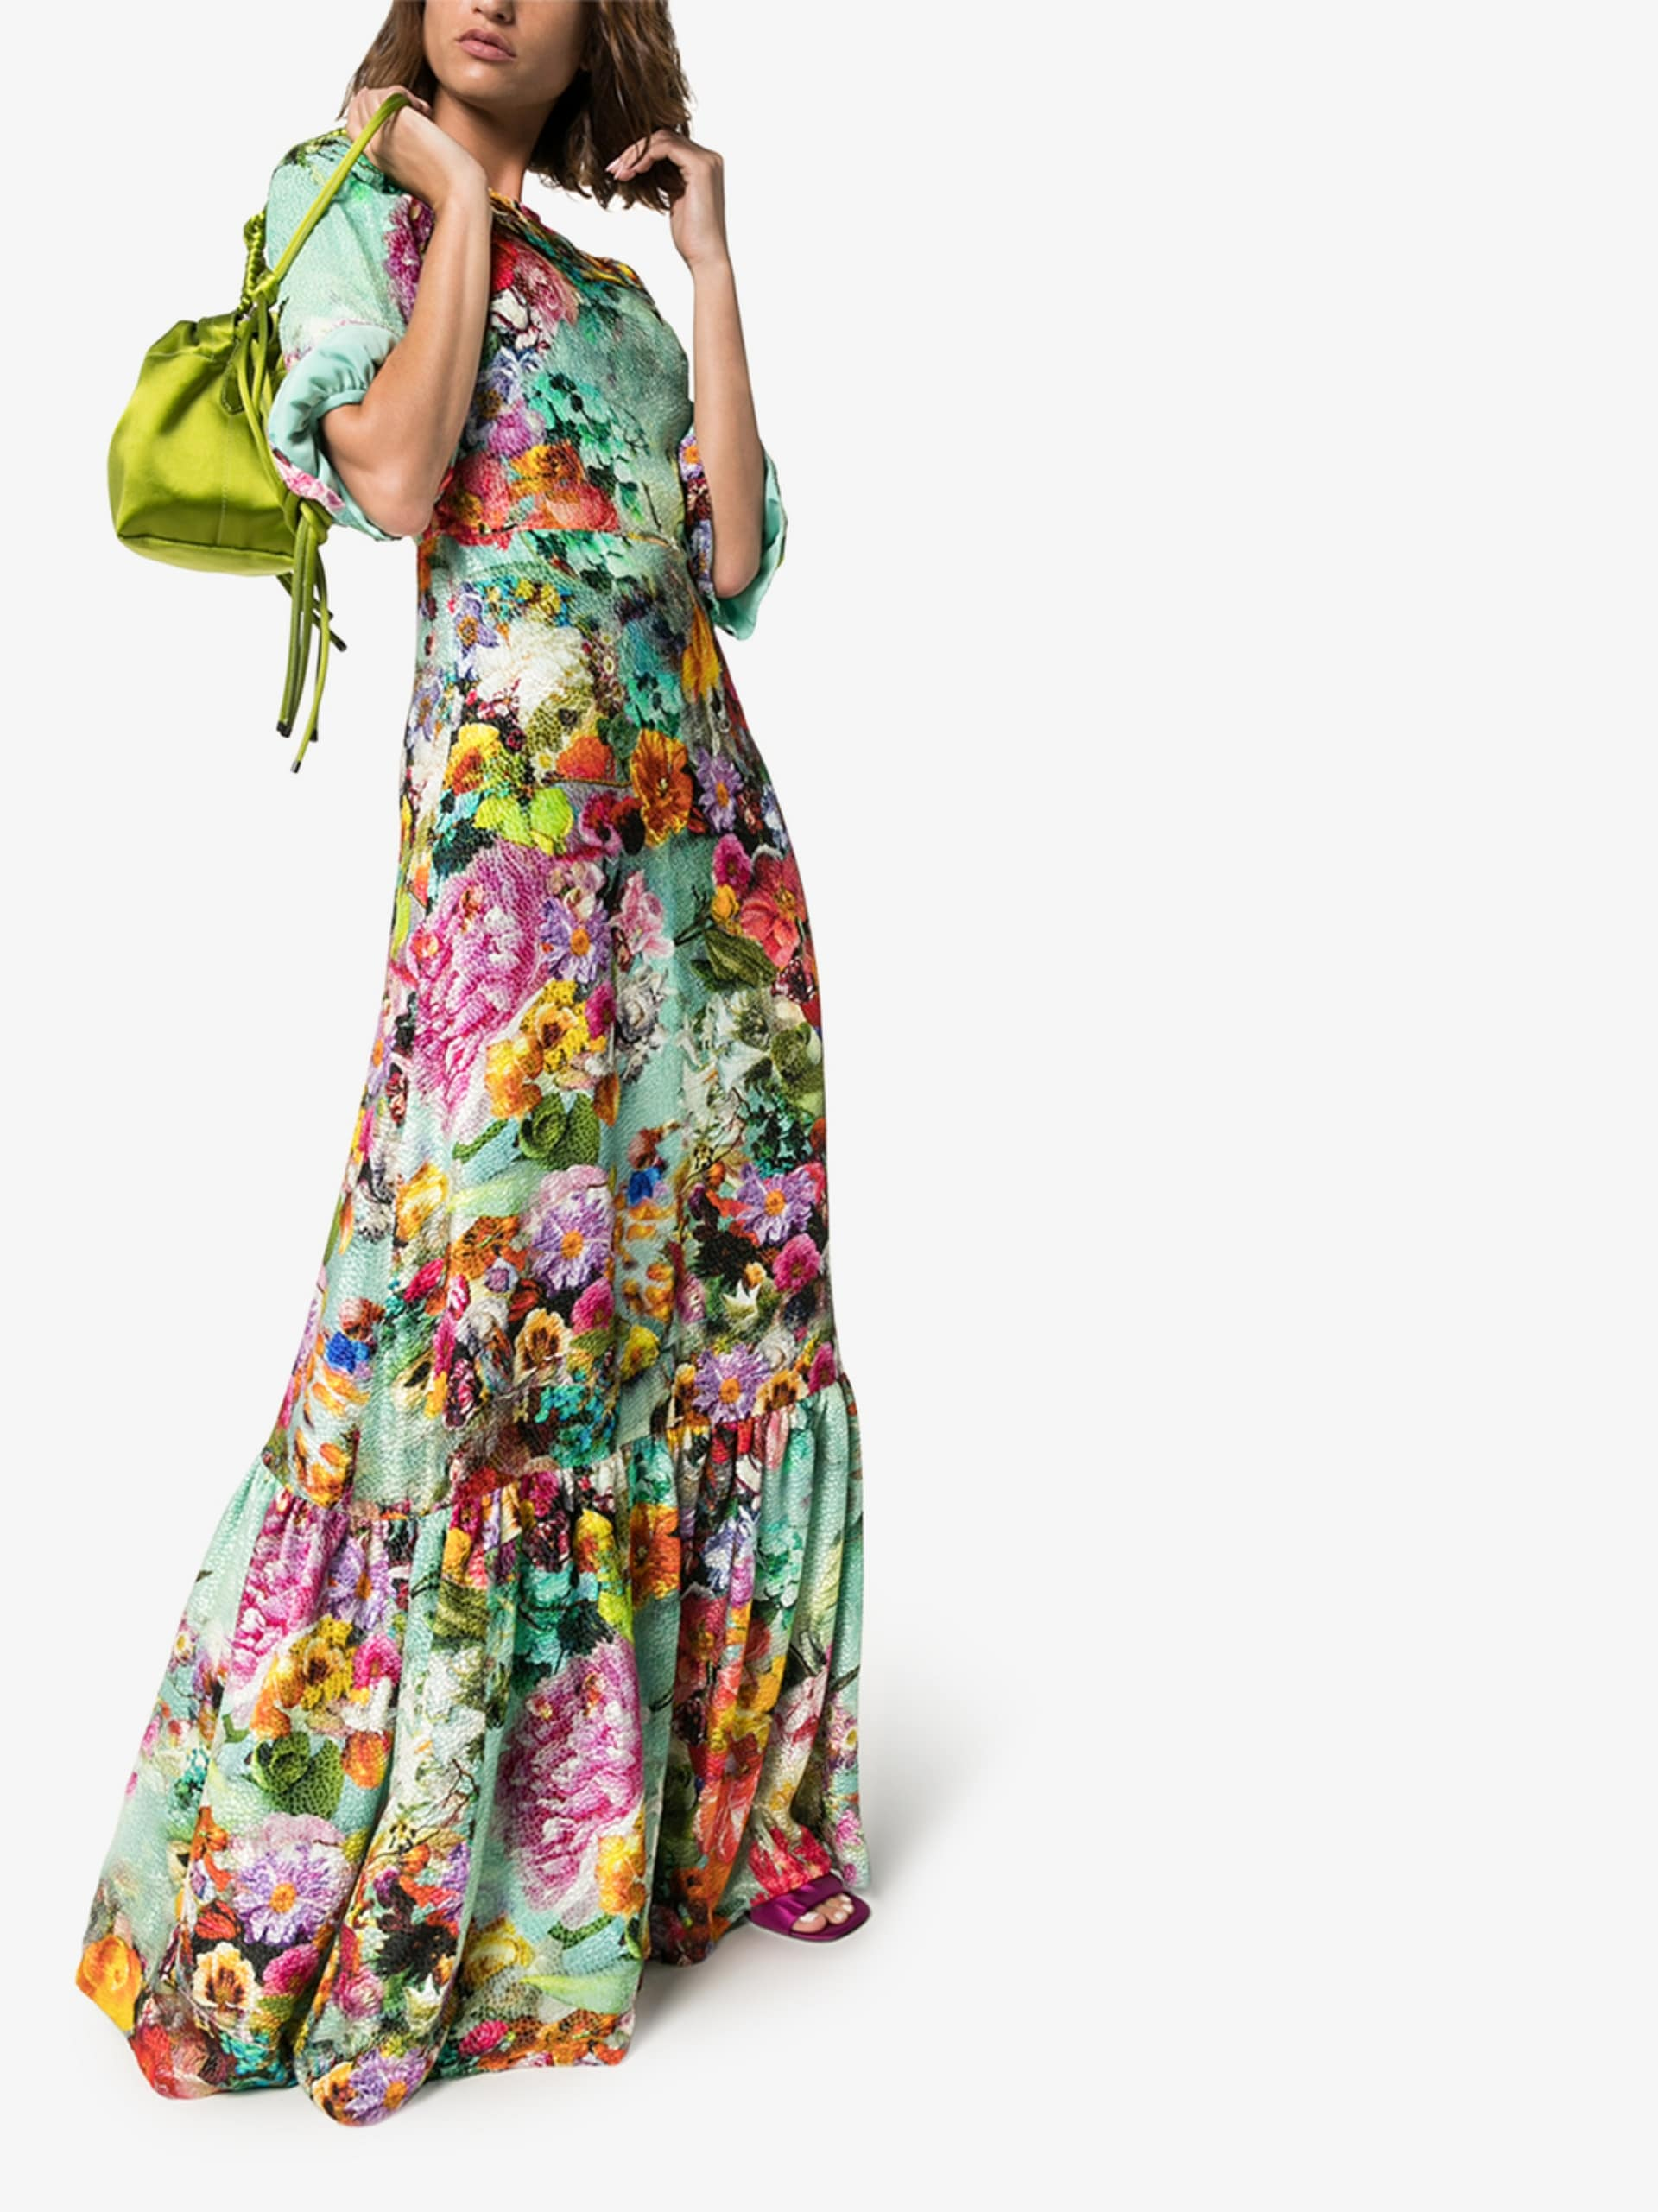 MARY KATRANTZOU Floral Print Frill Detail Dress